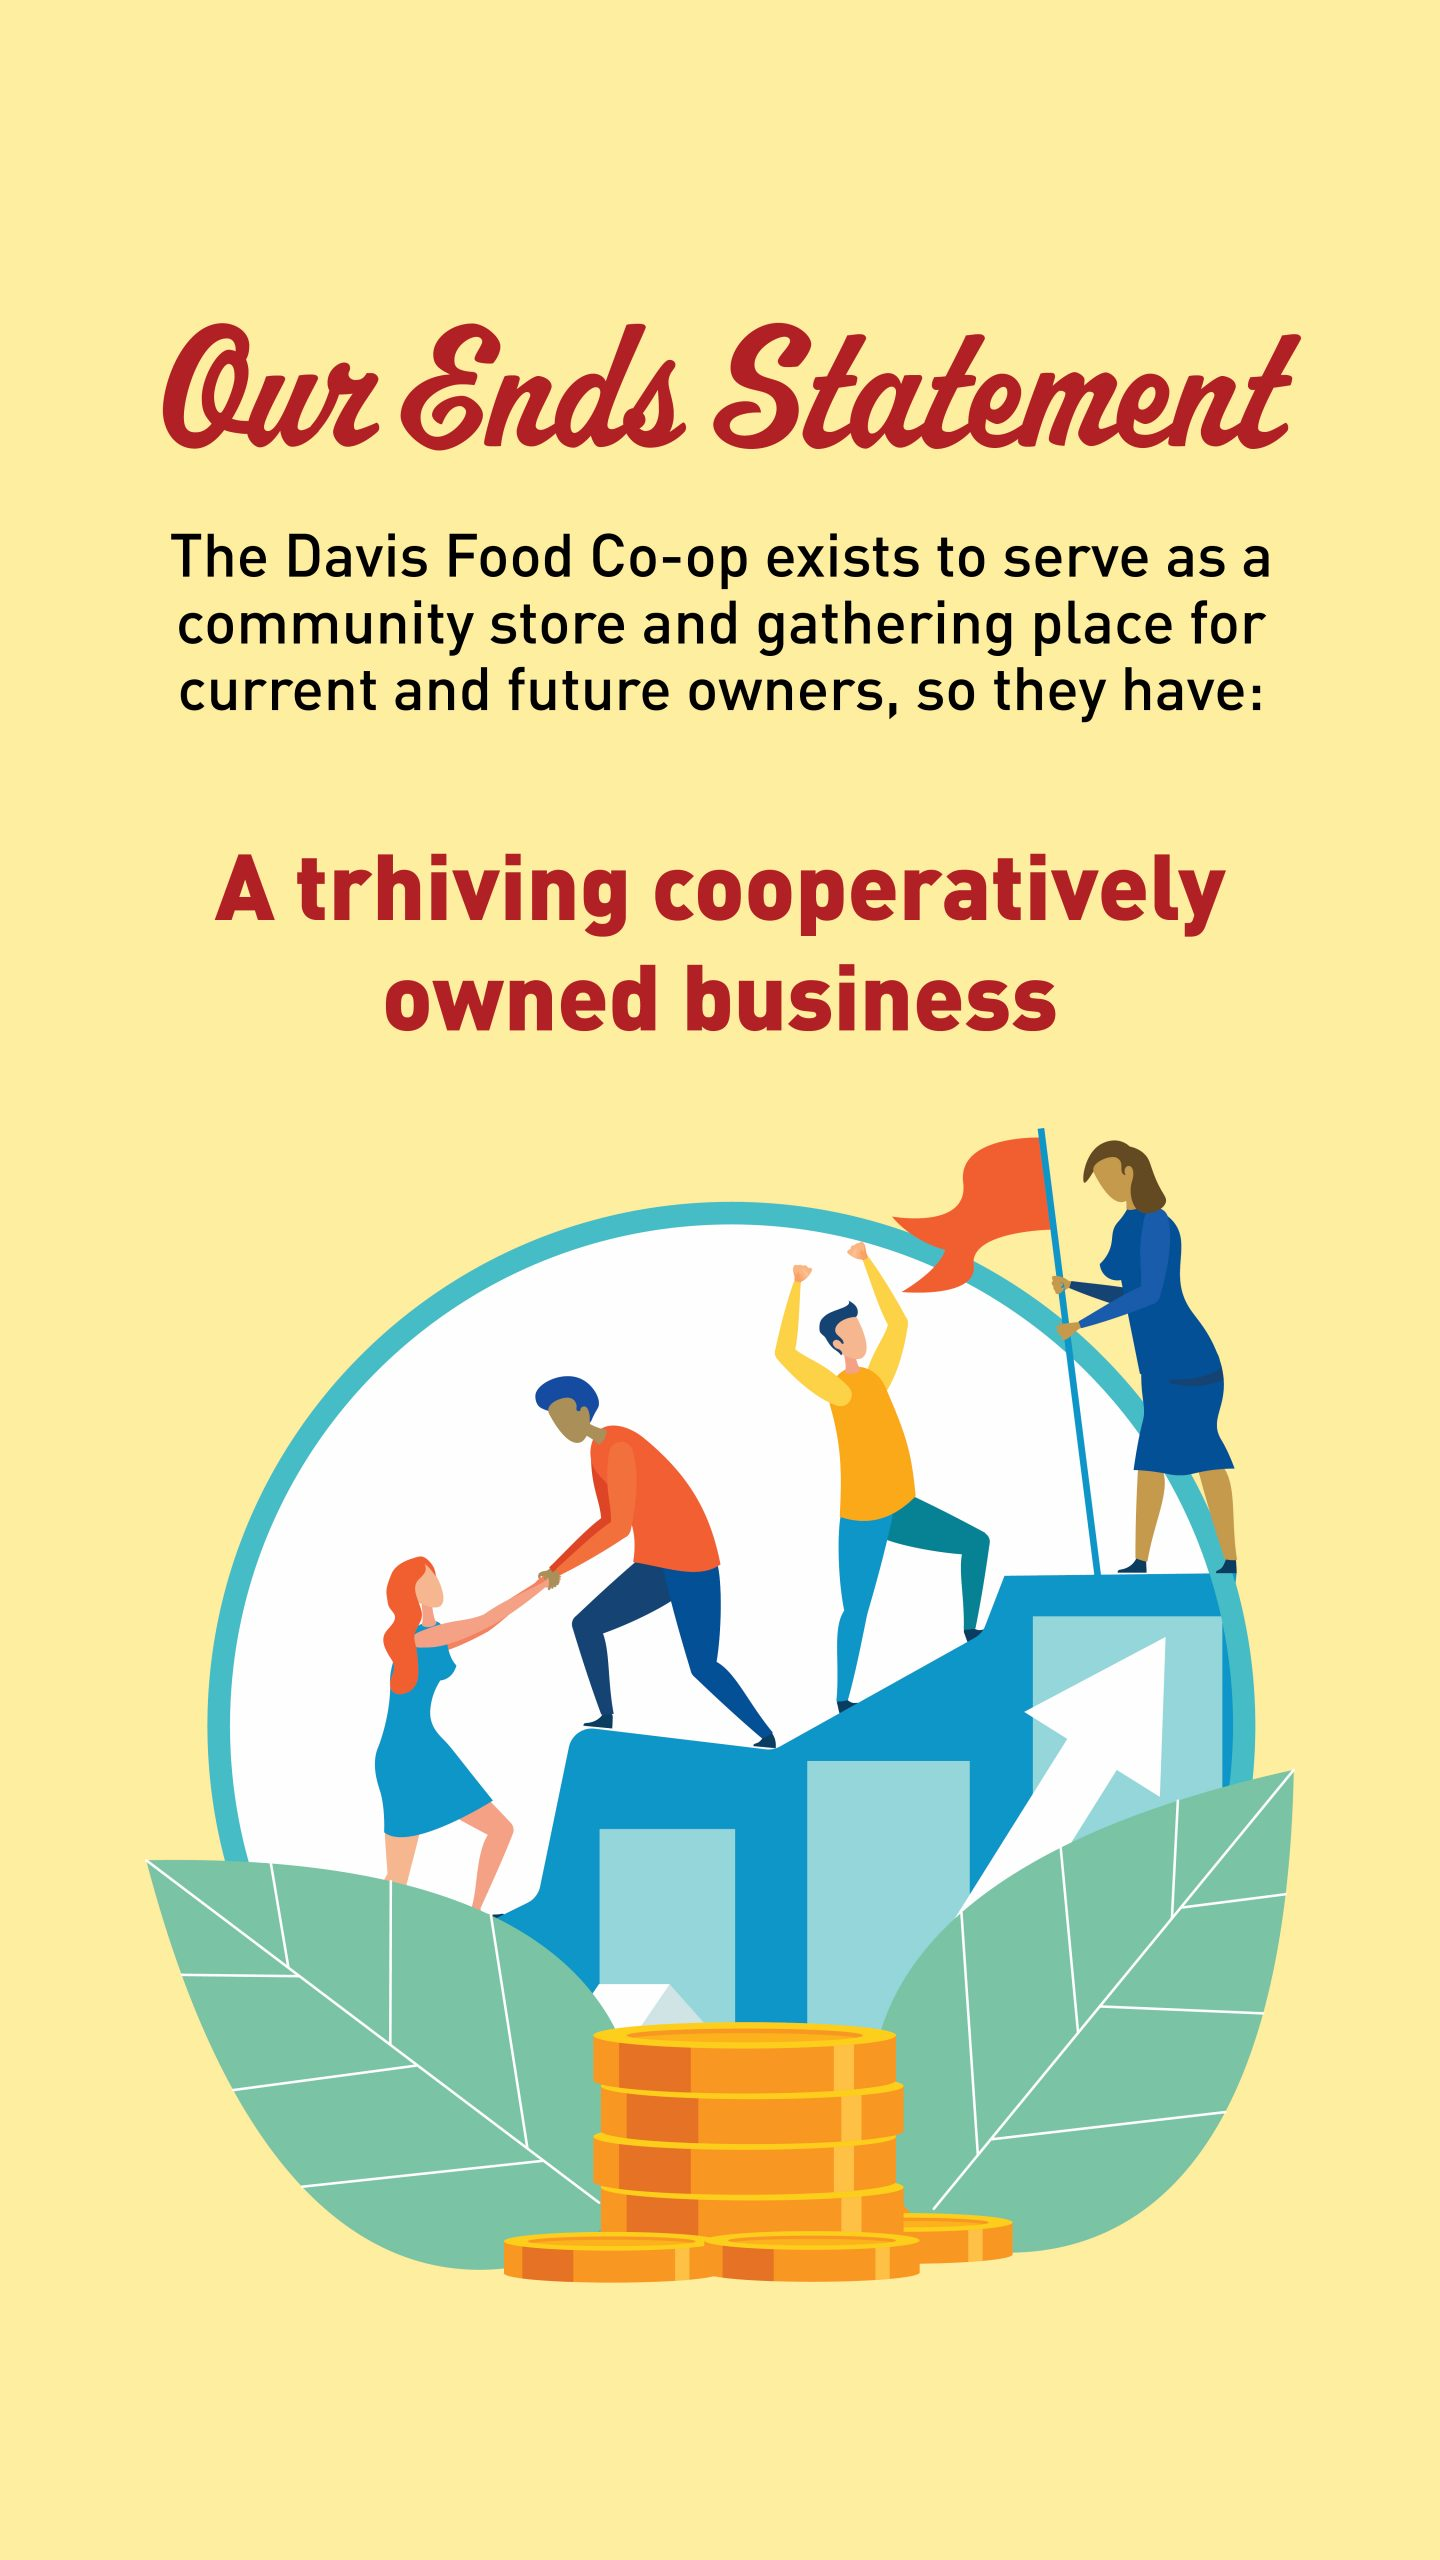 DFC Ends #1:  A thriving cooperatively owned business